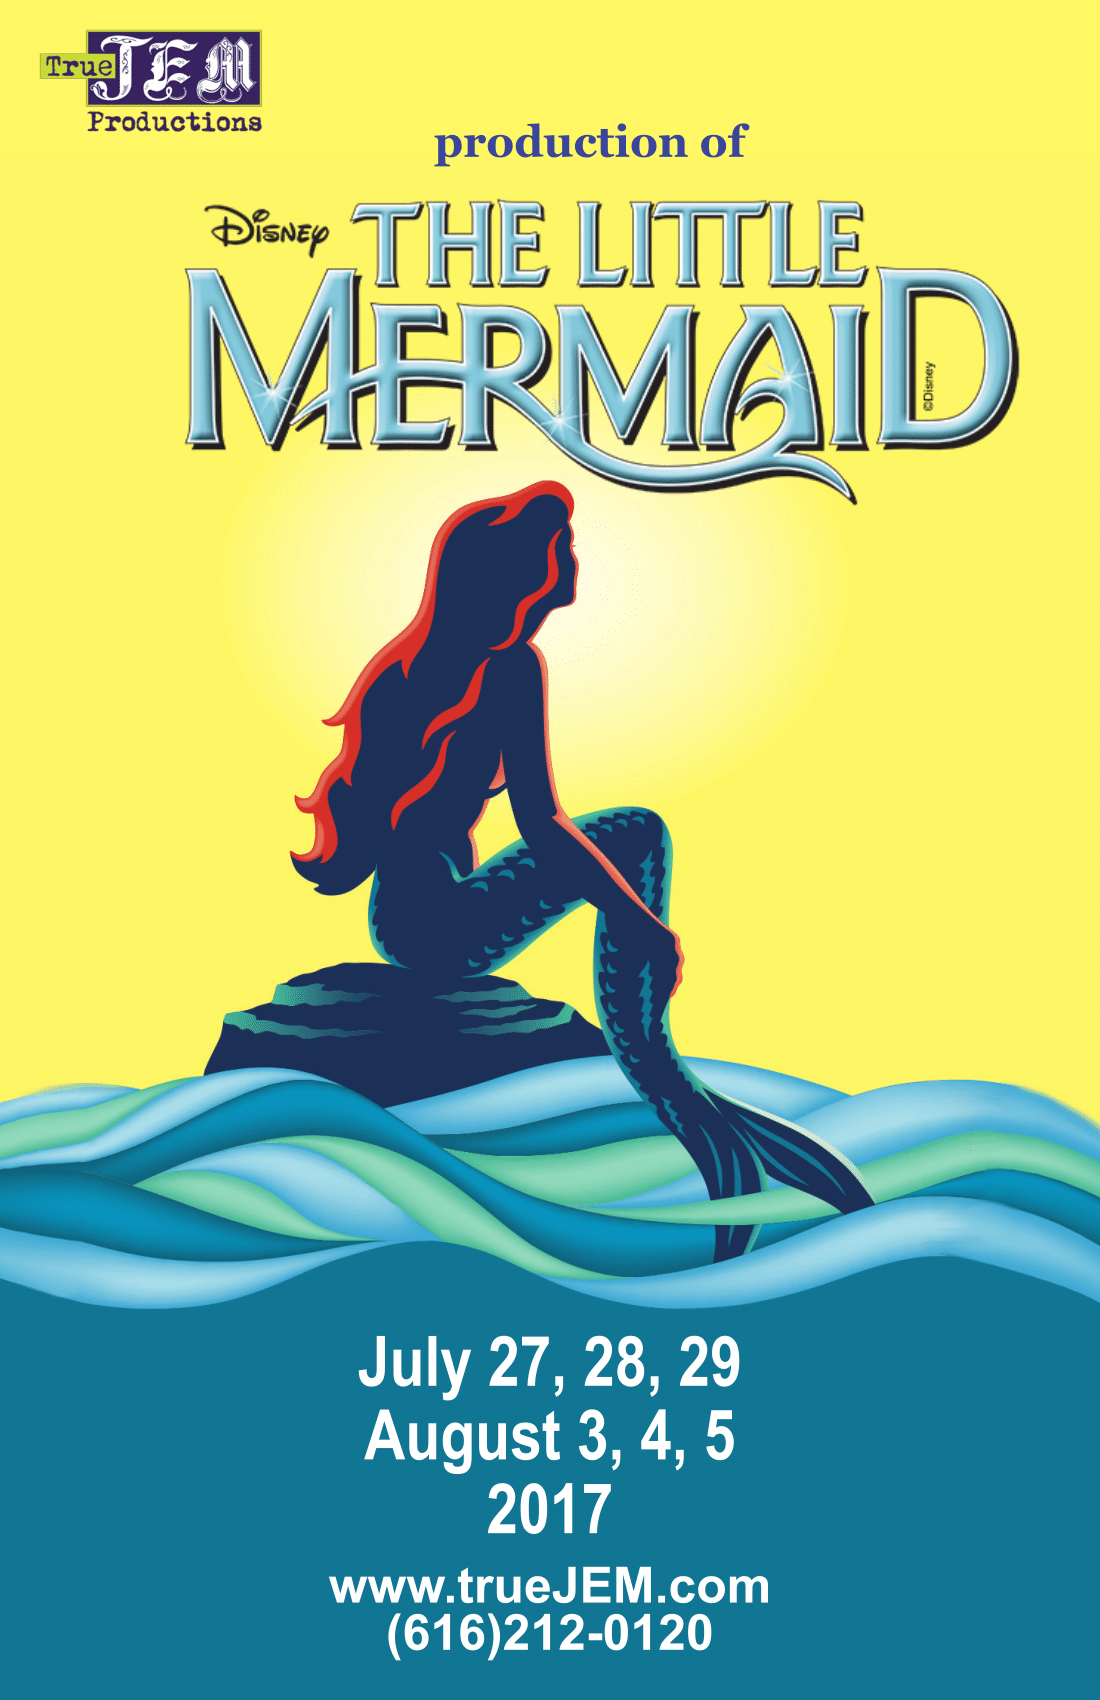 LittleMermaid_playbill-cover_5.5x8.5-1